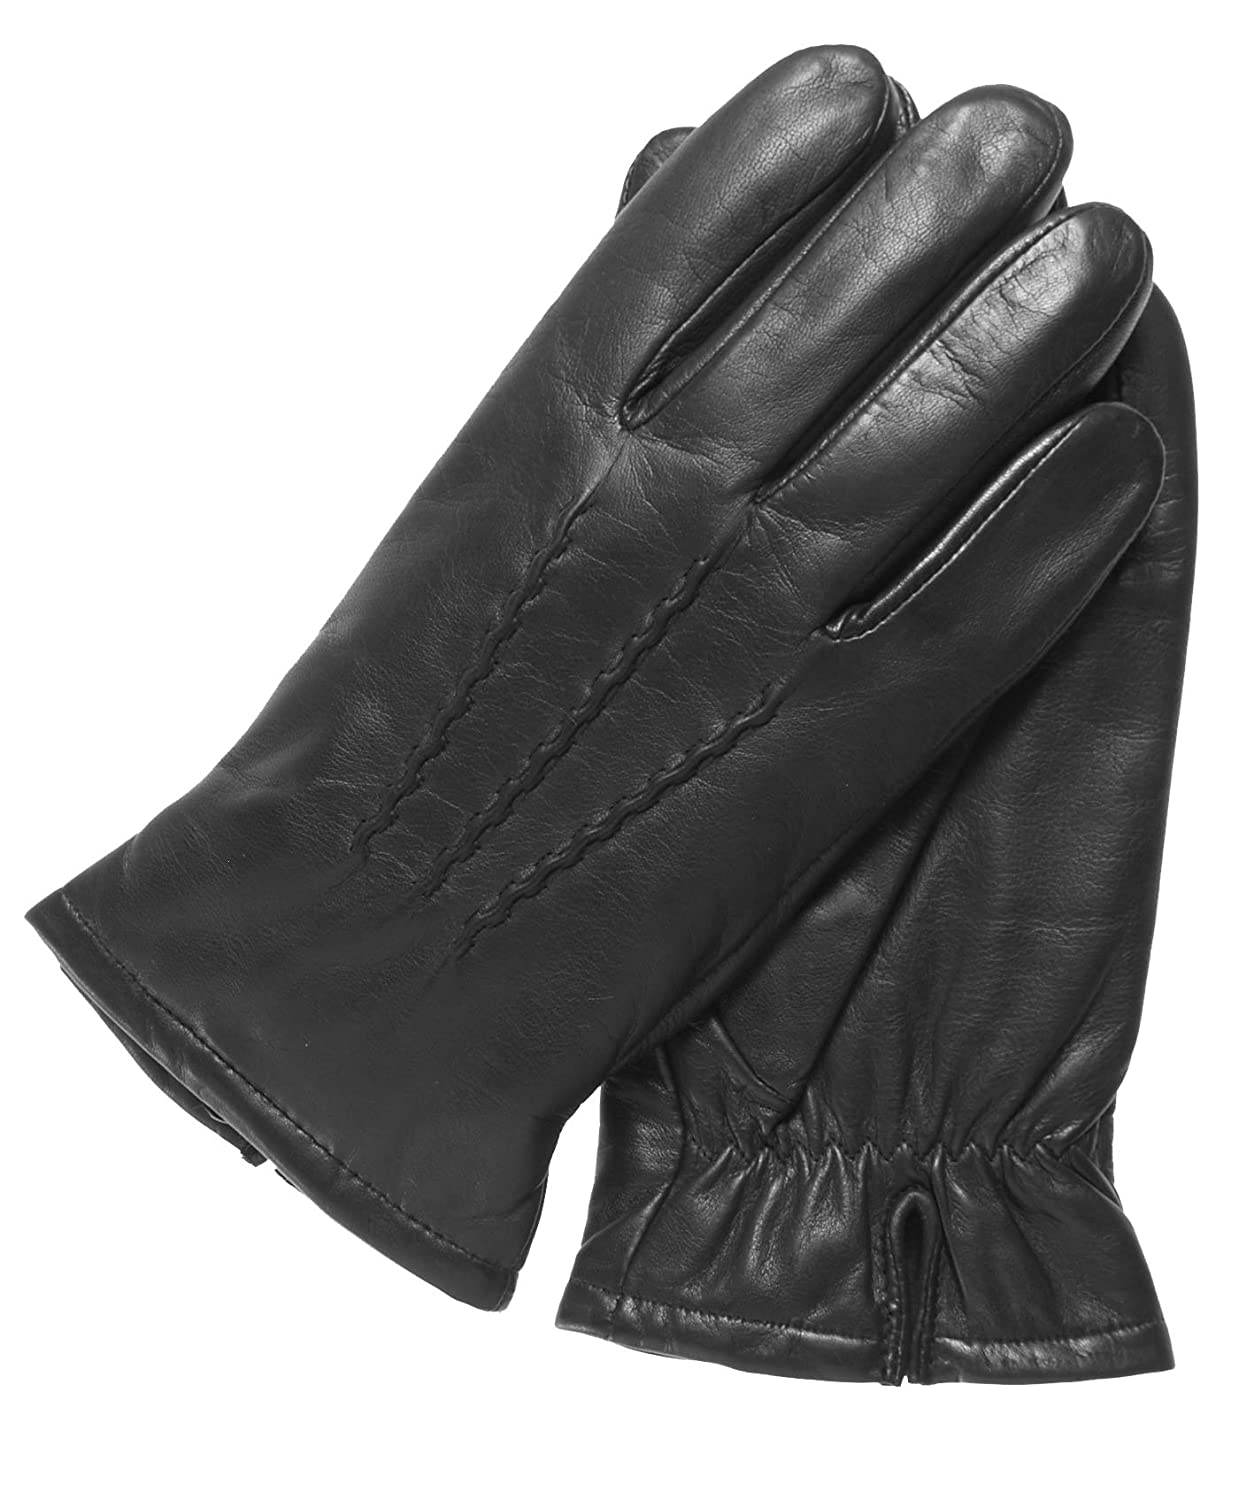 Thinsulate leather driving gloves - Pratt And Hart Men S Lambskin Winter Leather Gloves With Thinsulate Lining Size Xs Color Black At Amazon Men S Clothing Store